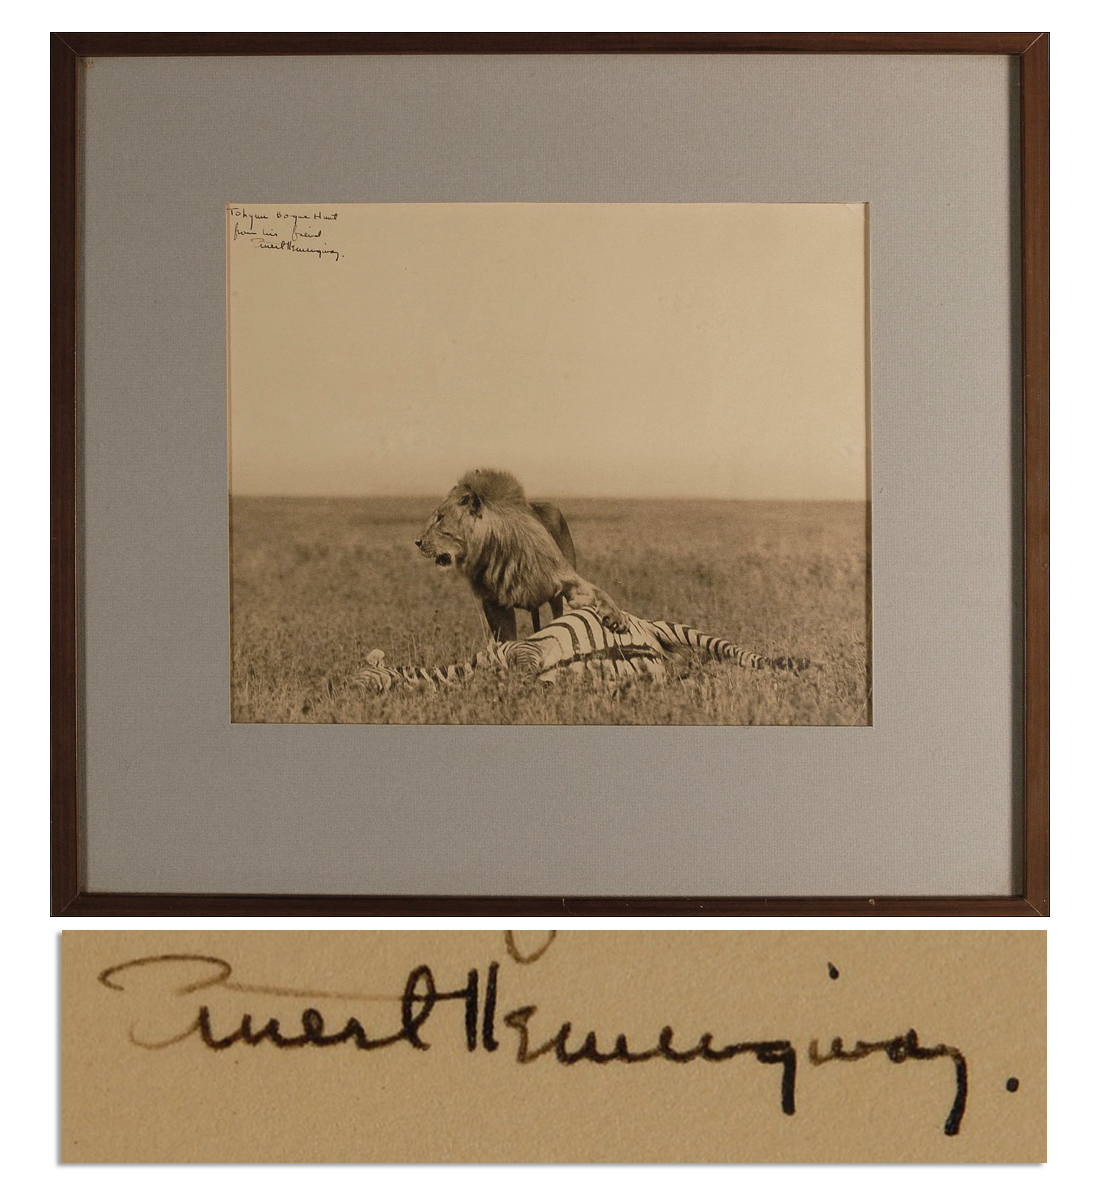 Ernest Hemingway First Edition Amazing Ernest Hemingway Signed Photograph of a Lion and Its Hunt While on Safari -- Large Photograph Measures 11'' x 9''